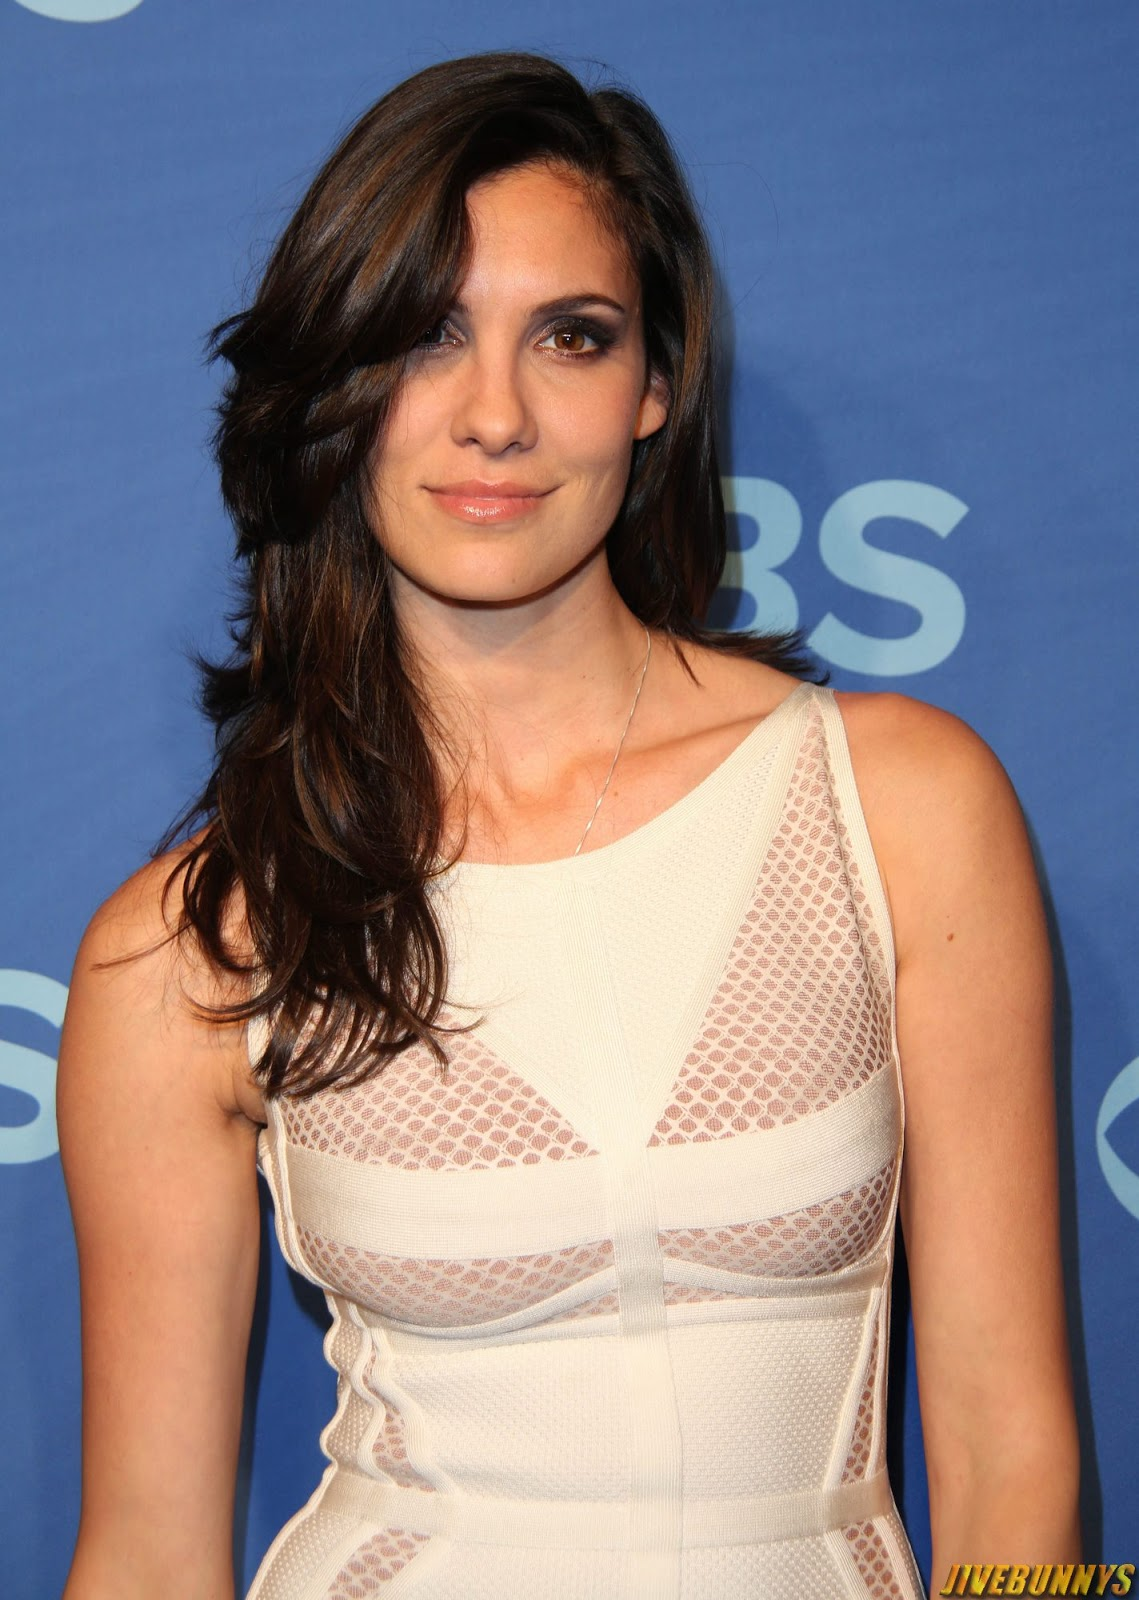 Daniela ruah hot photos and picture gallery 2 for Diva sofia streaming